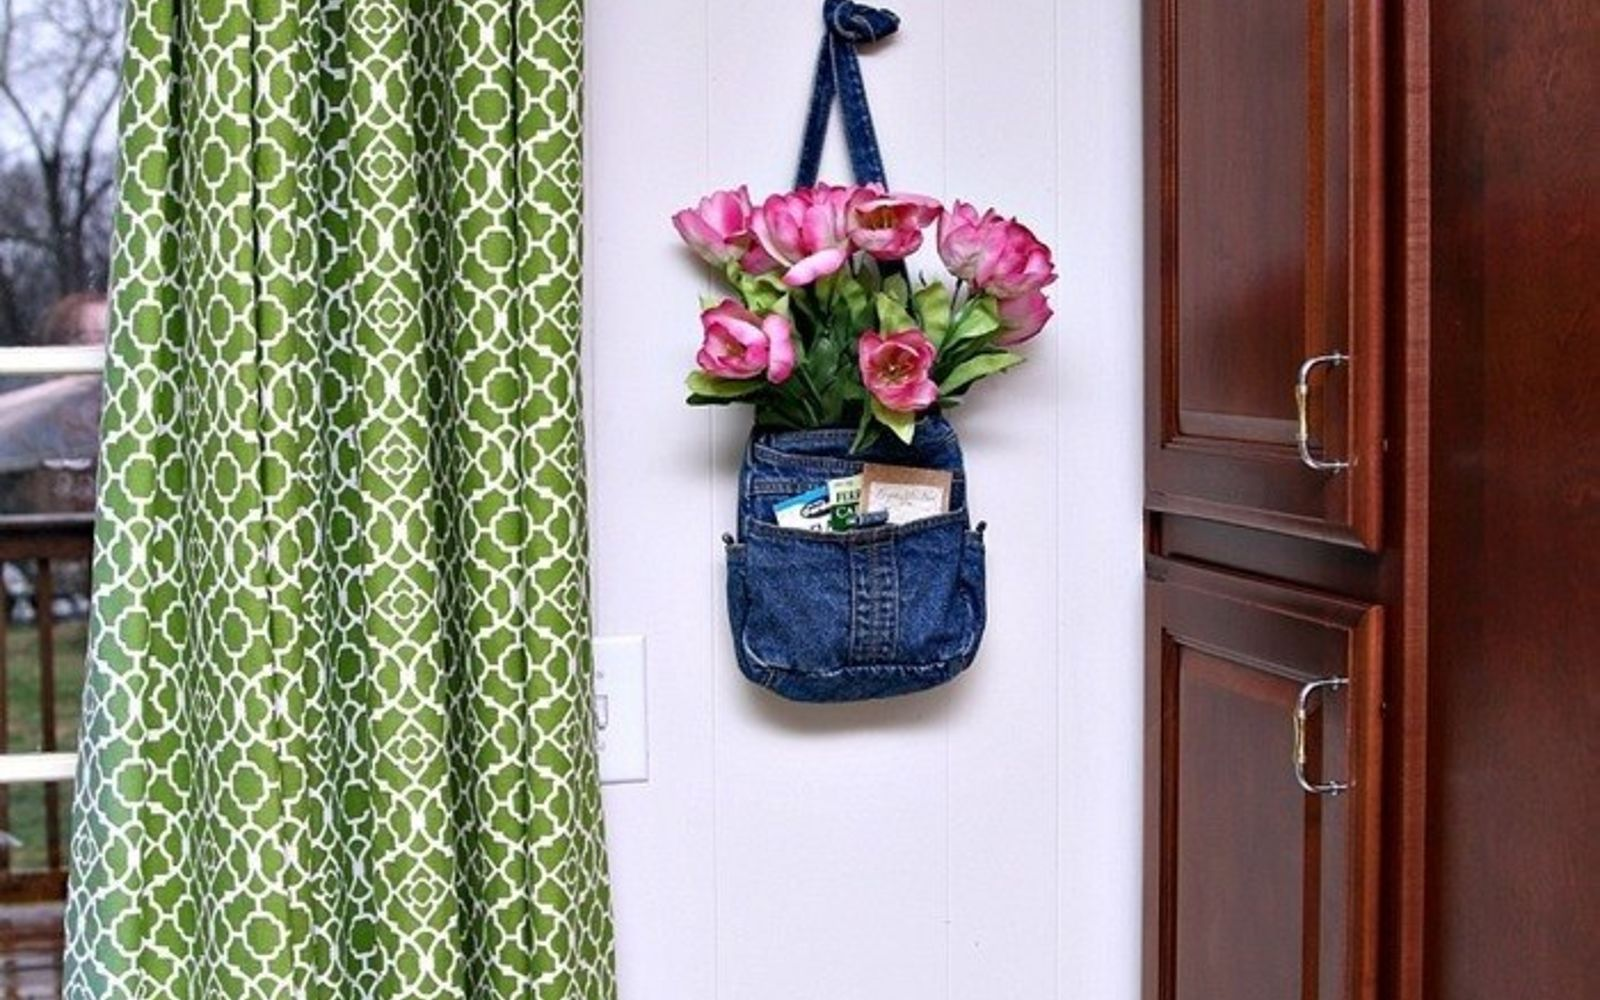 s these are the hottest diy spring trends of 2016, crafts, seasonal holiday decor, Reuse old bags and purses on your walls